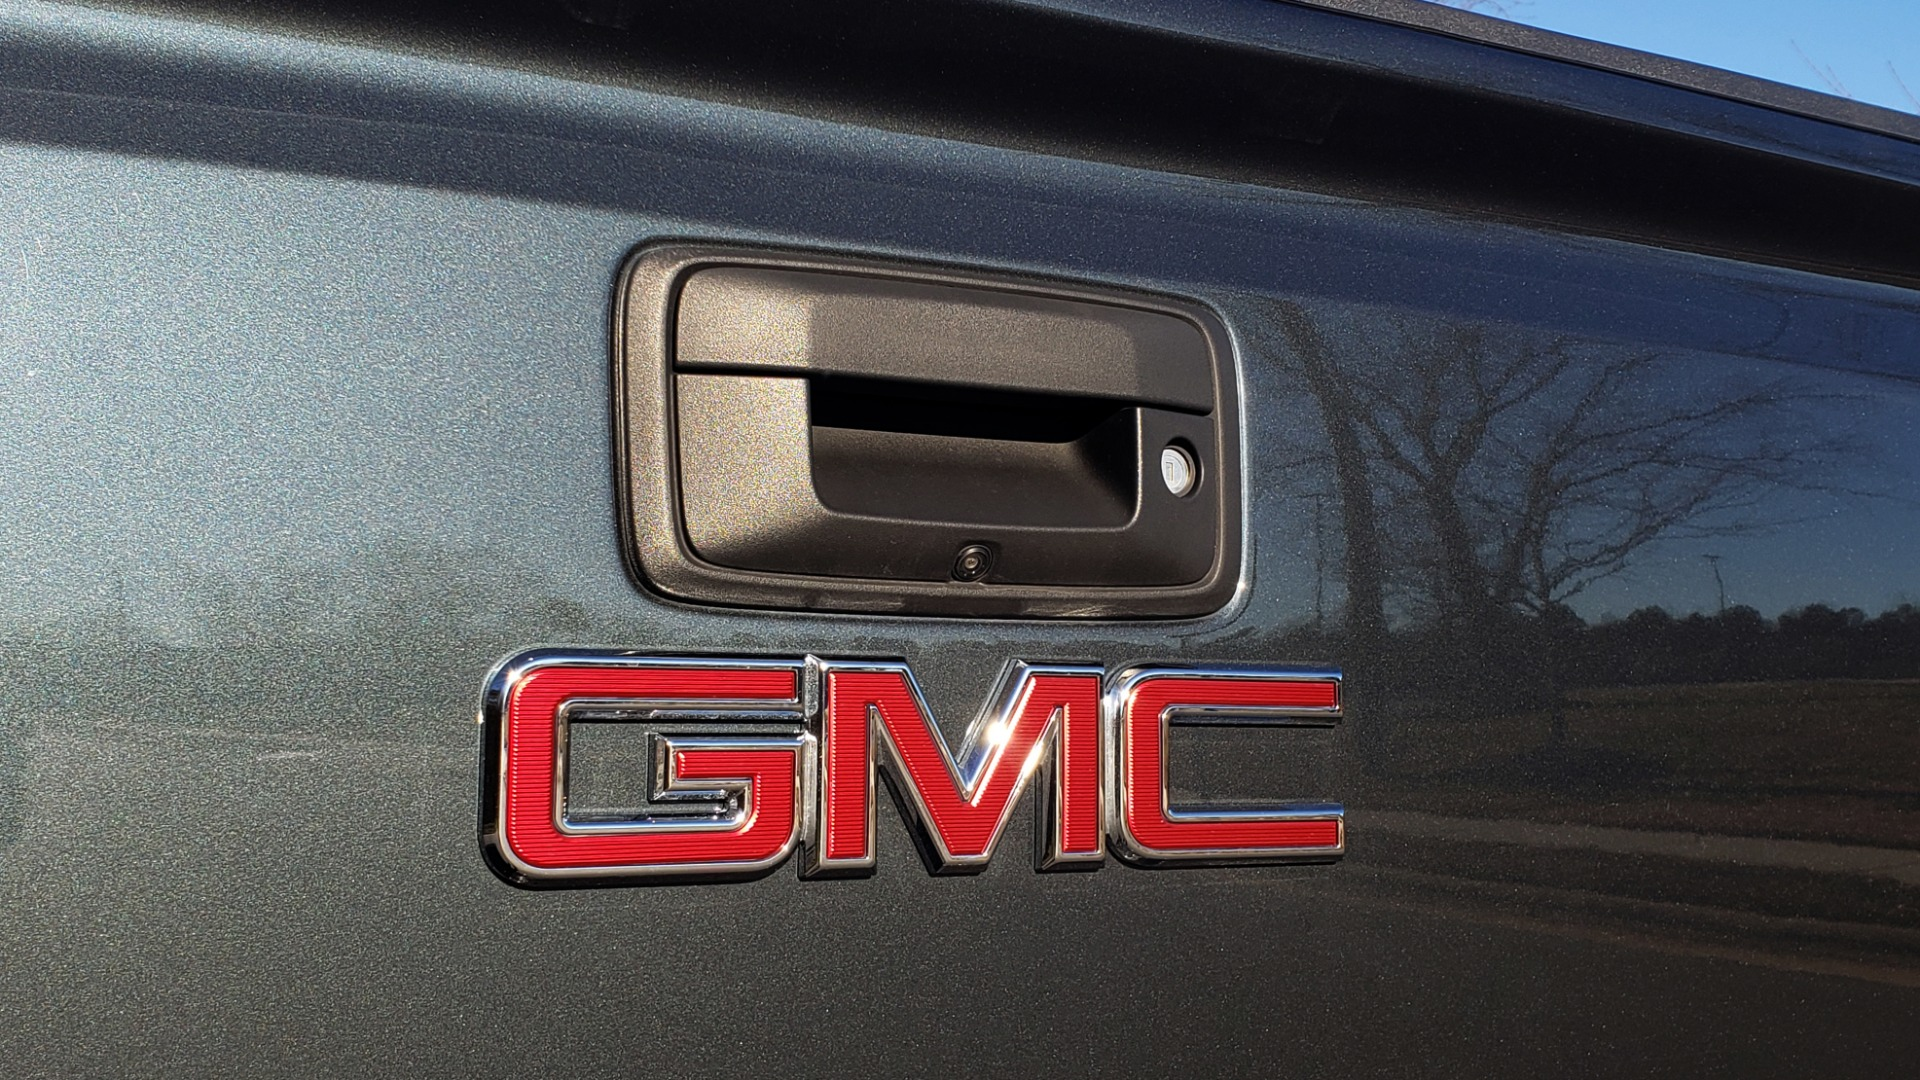 Used 2018 GMC SIERRA 3500HD DENALI 4X4 DUALLY / 6.6L DURAMAX PLUS / NAV / SUNROOF / REARVIEW for sale Sold at Formula Imports in Charlotte NC 28227 21